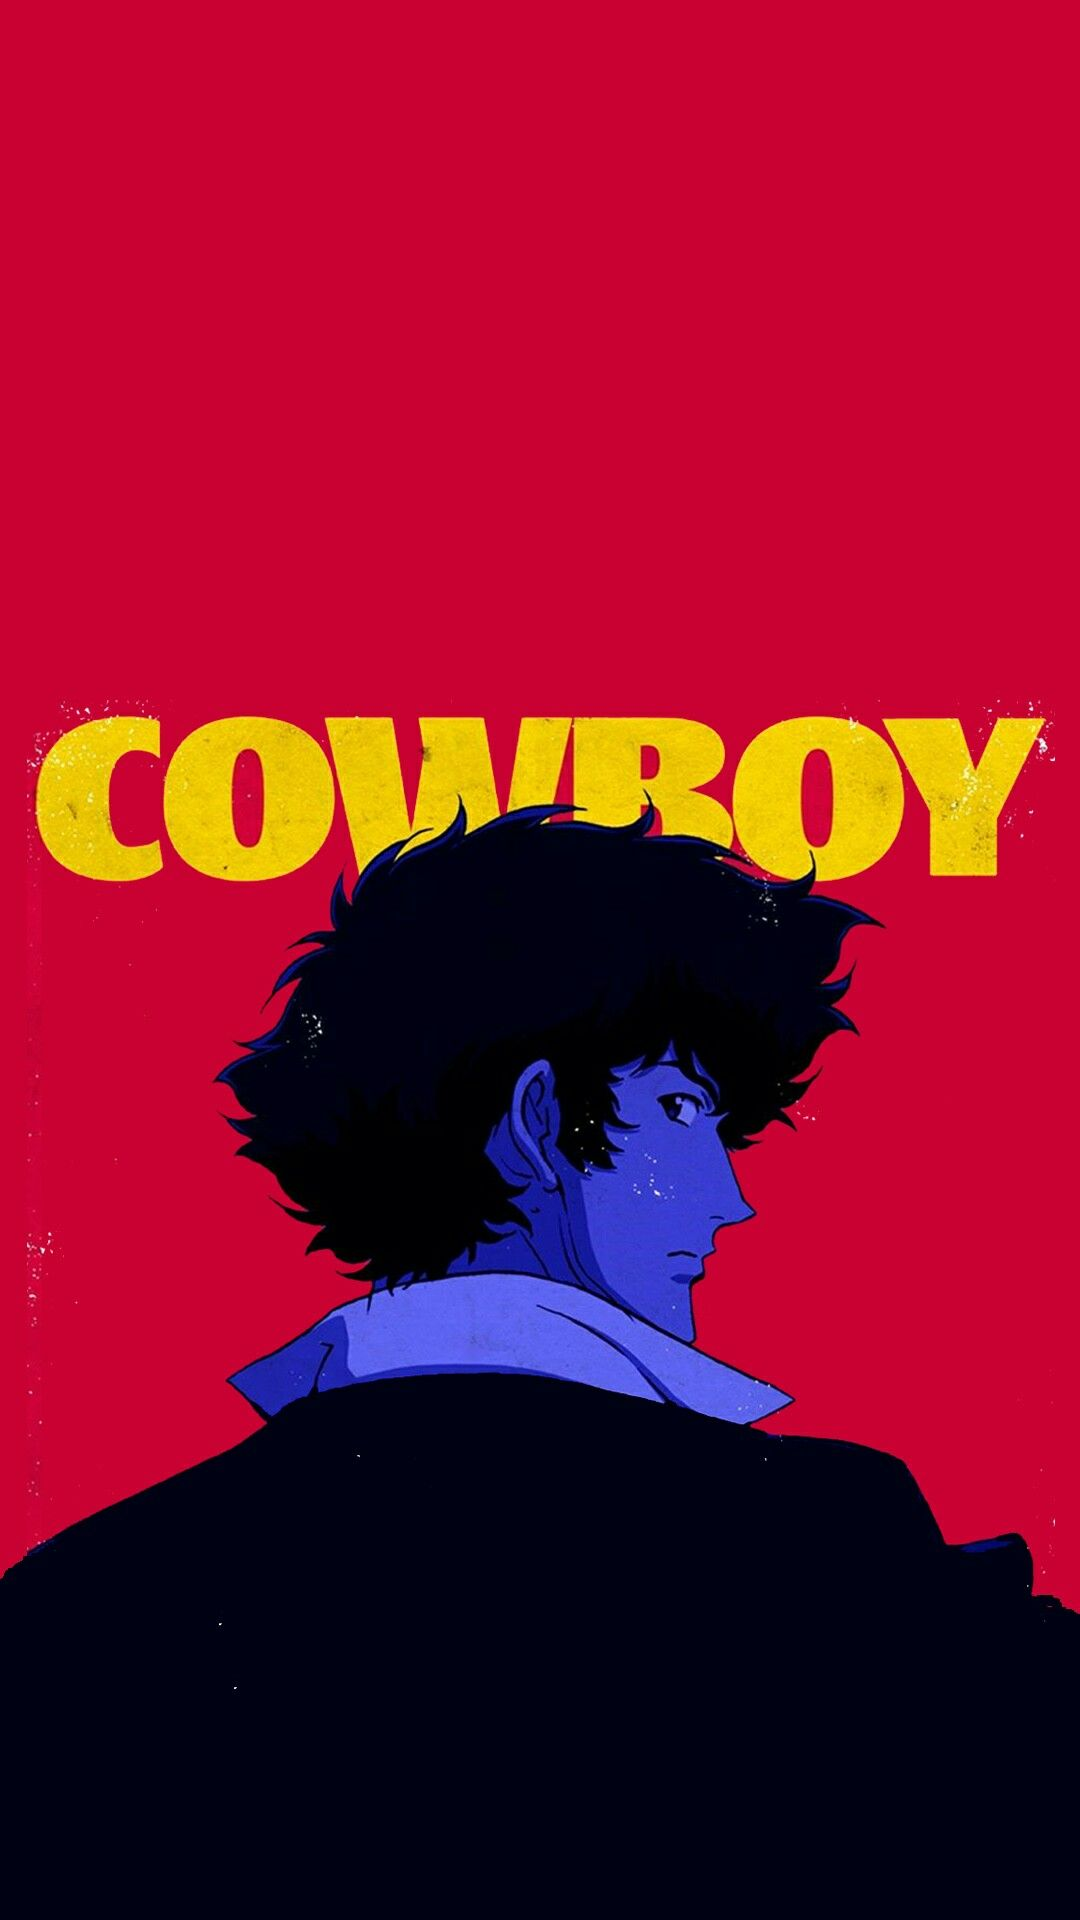 Pin By Nicholas Chambers On Wallpaper In 2019 Cowboy Bebop